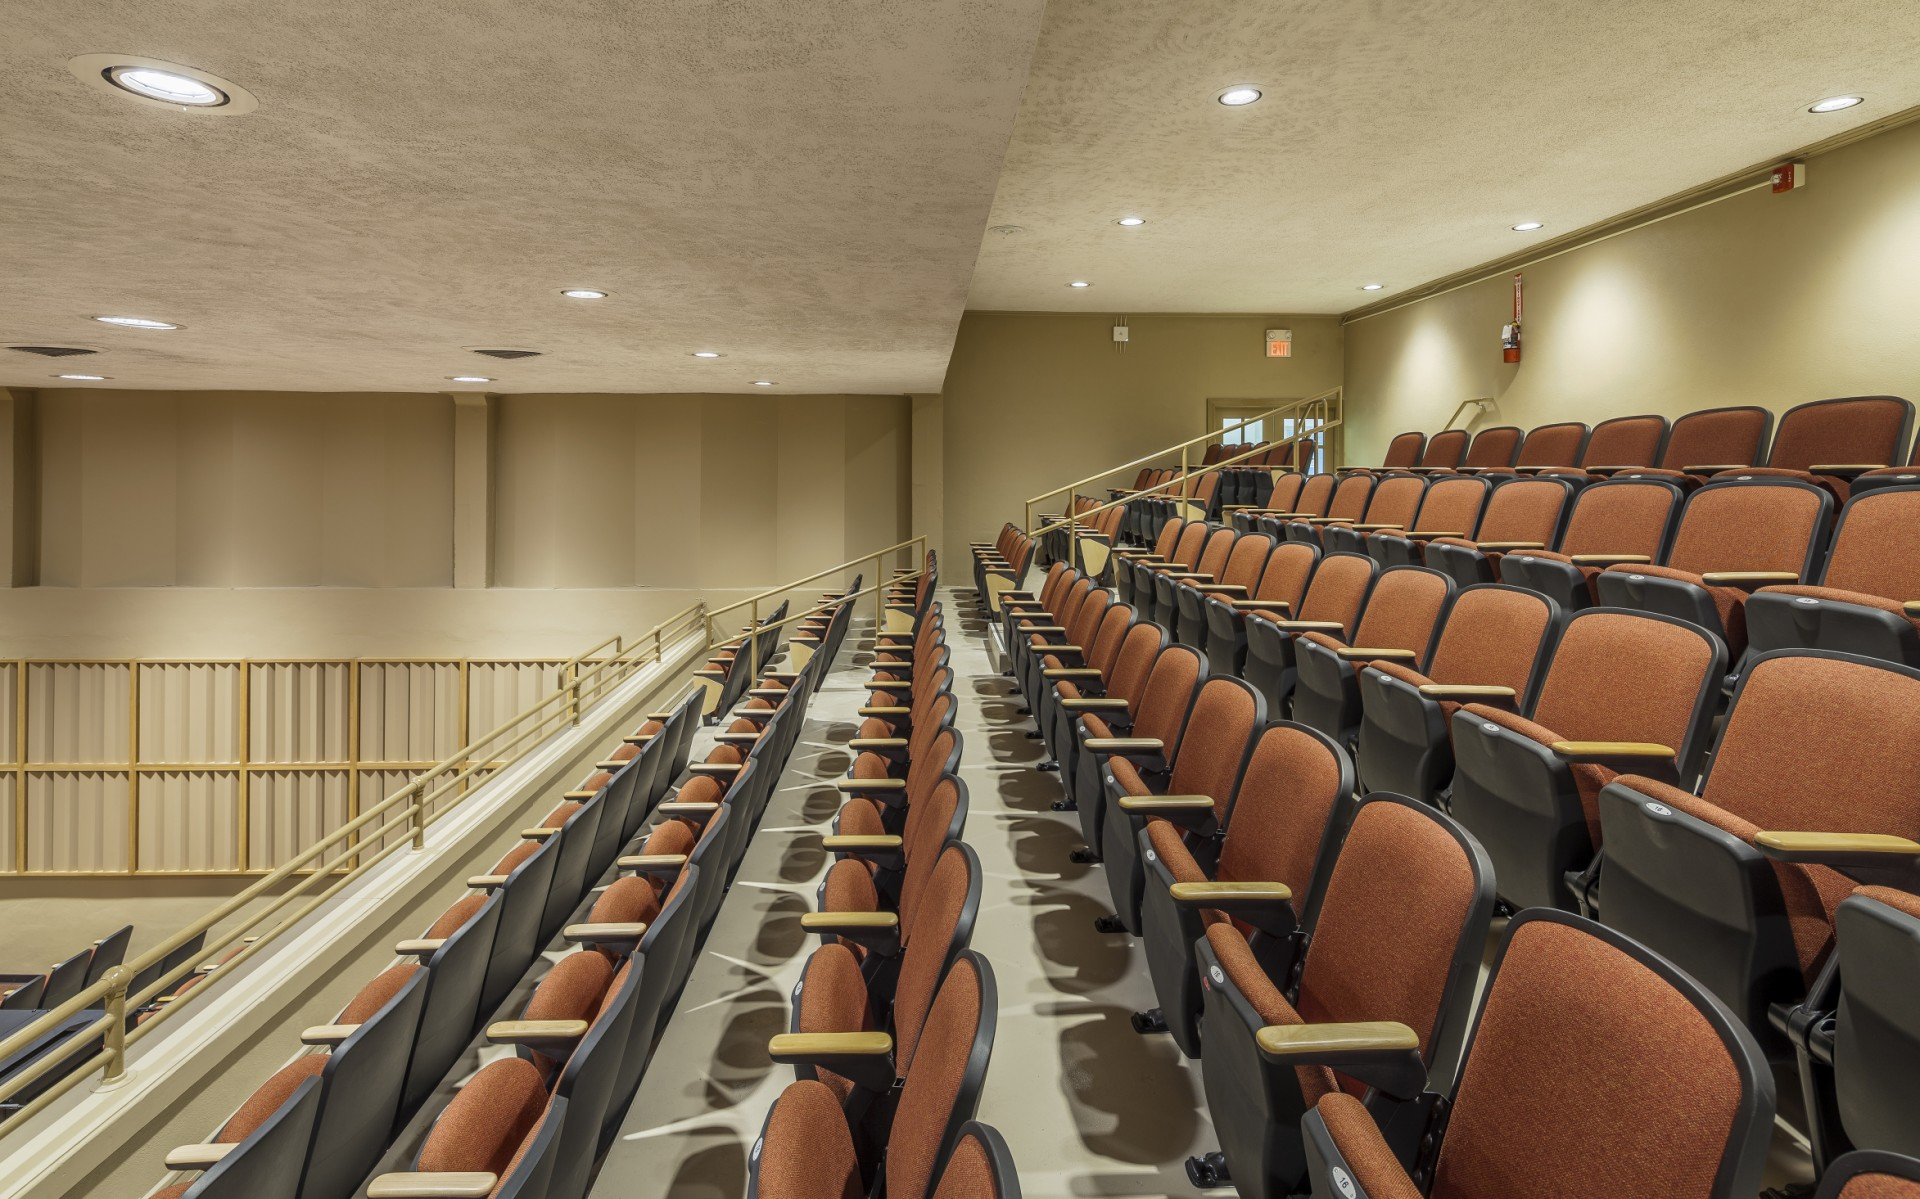 Lumenbeam Medium fixtures were used under the balcony to provide the same level of flexibility and brightness.